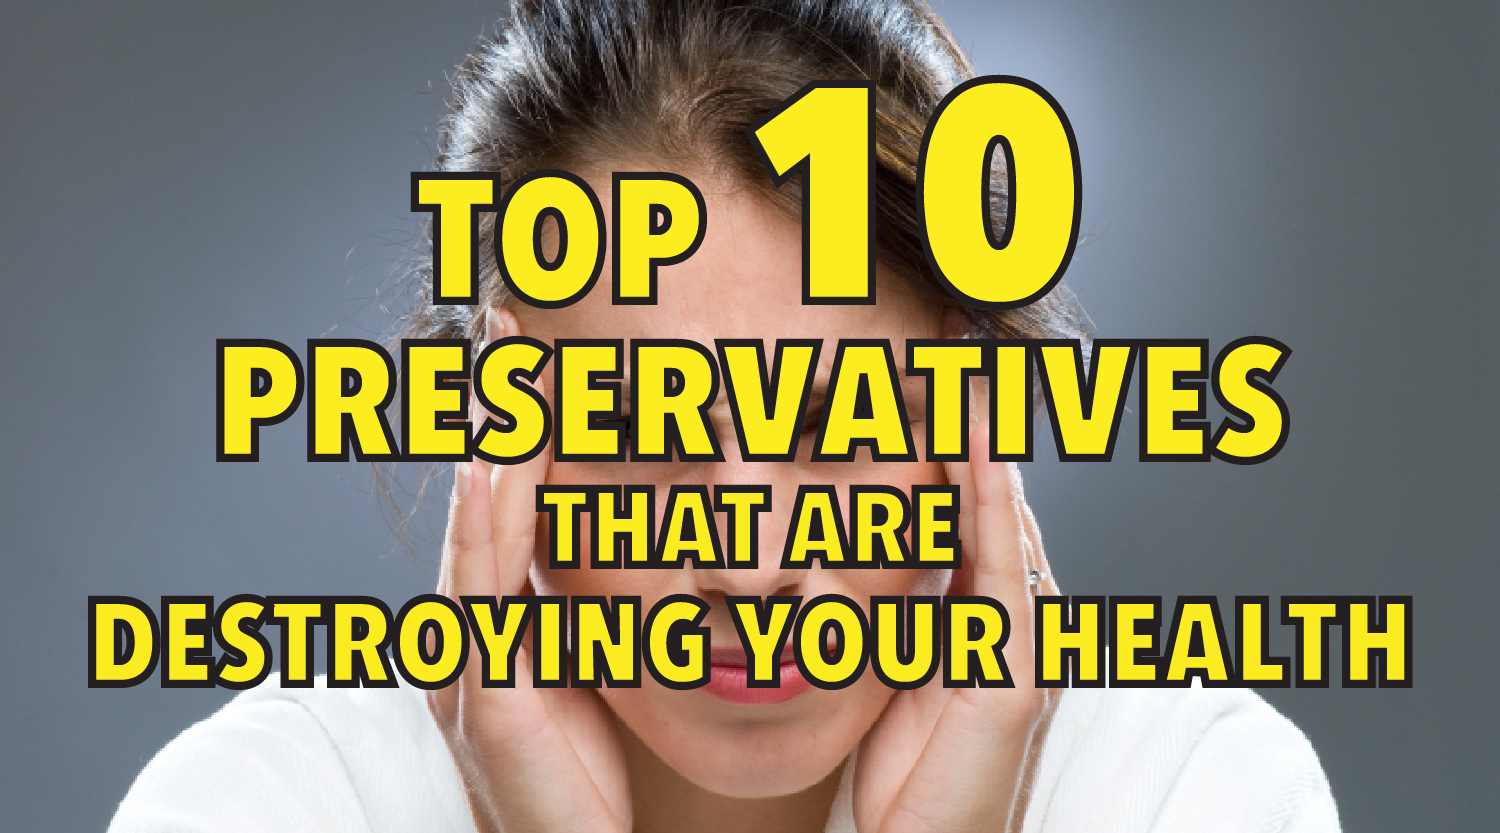 Top 10 preservatives that are destroying your health